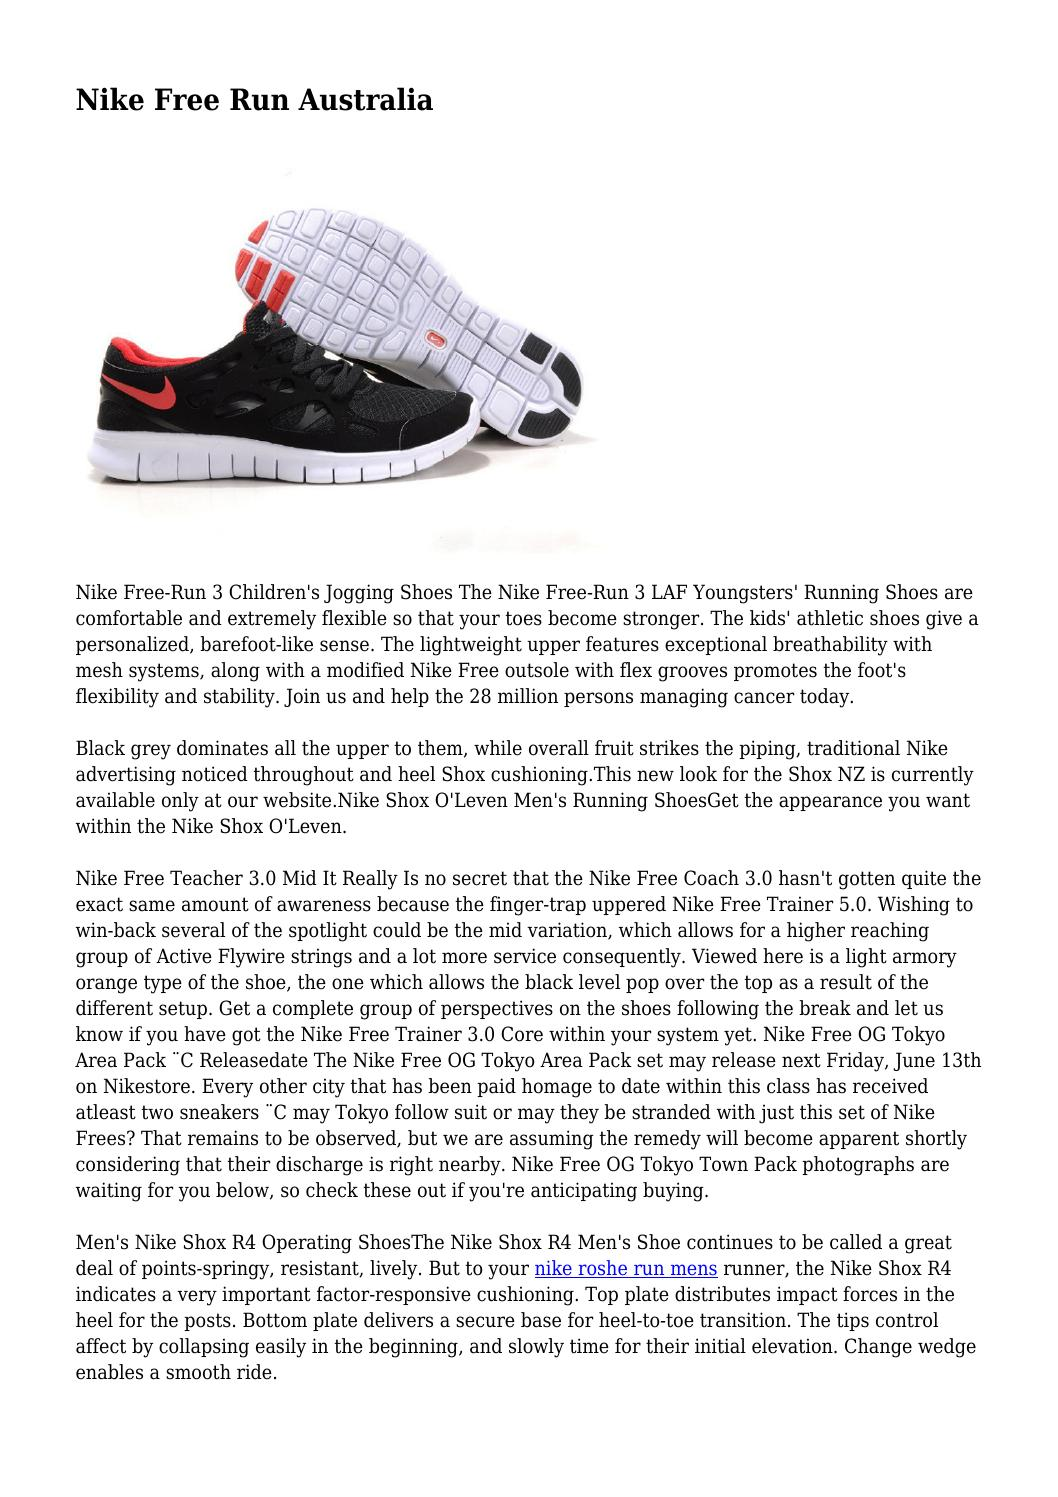 477042274c4234 Nike Free Run Australia by endurabledownli77 - issuu